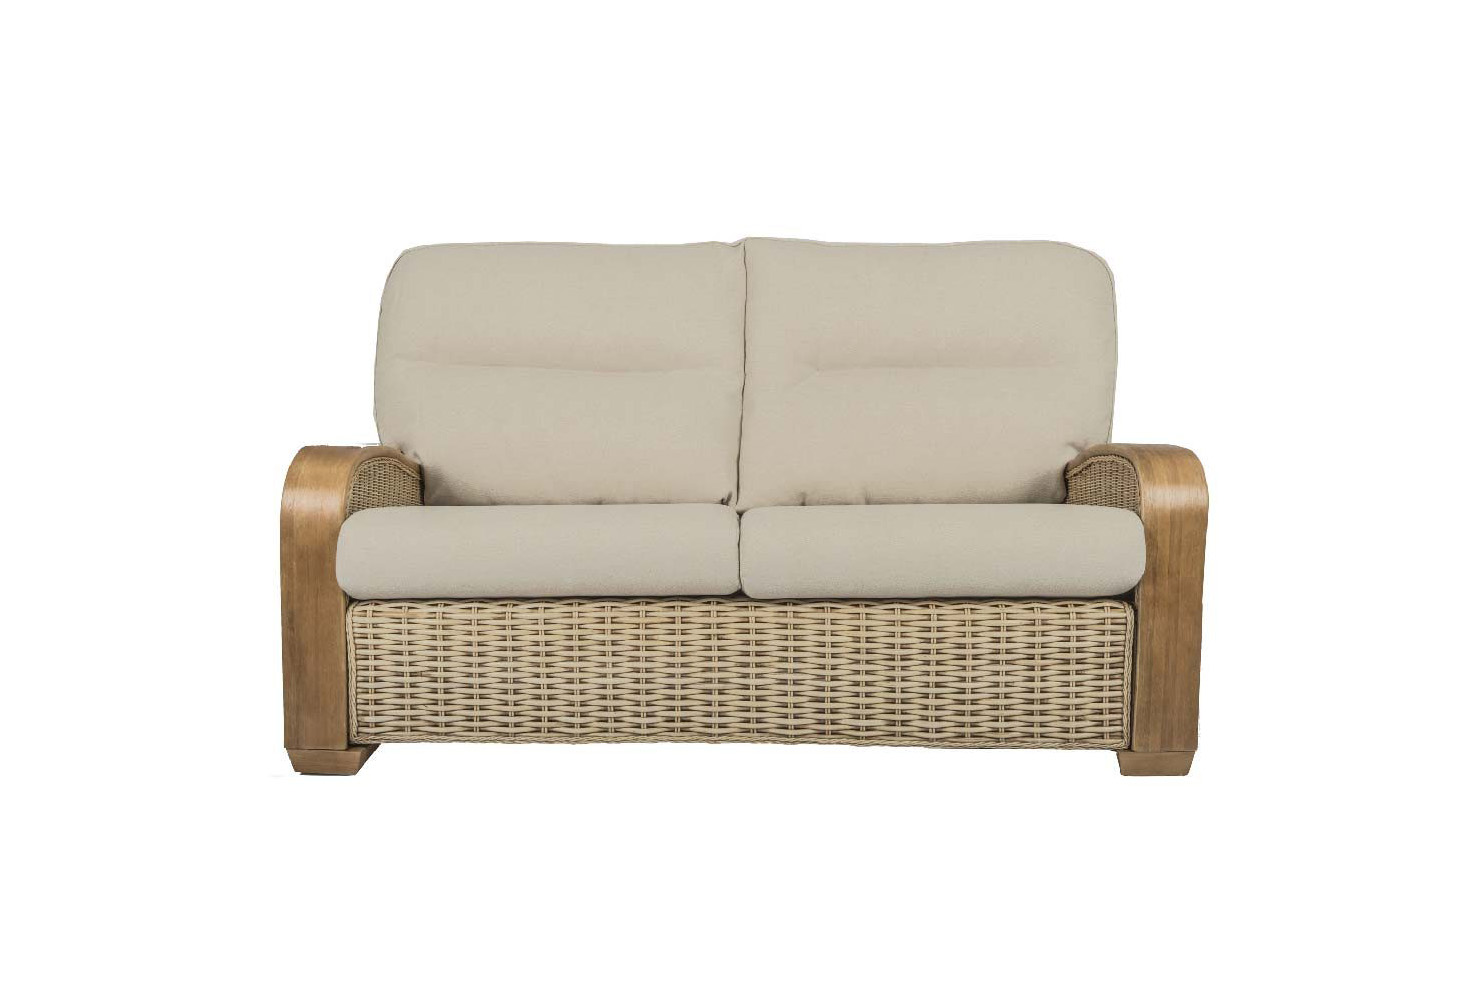 Surf Wicker Cane Rattan Conservatory Furniture Large Sofa